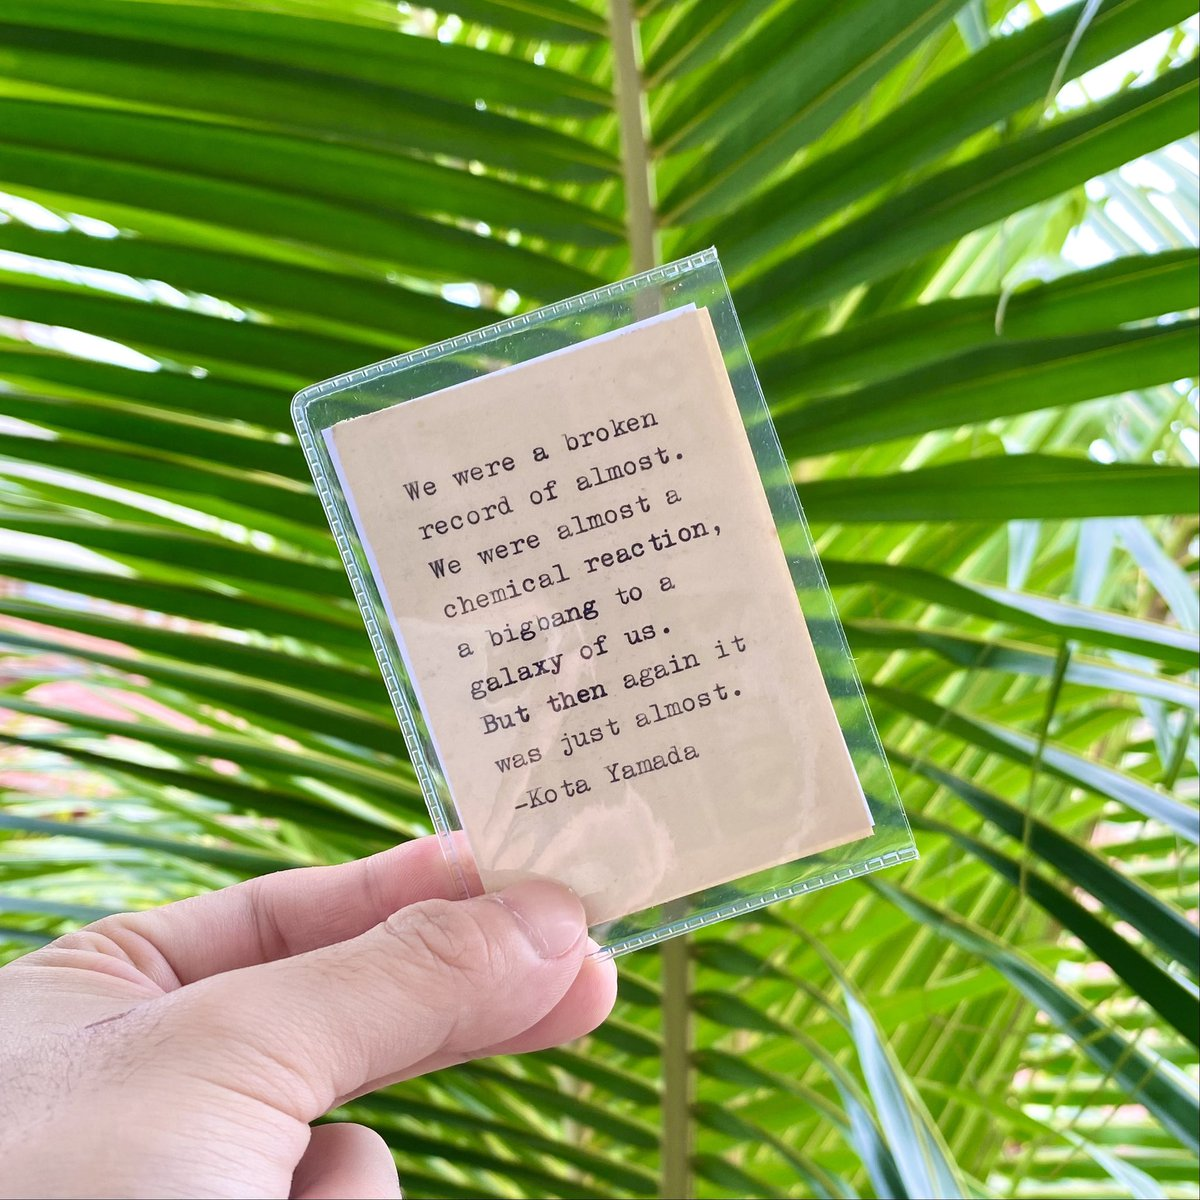 Get your very own pocket poetry! 💚 It comes in a protective sleeve and you may choose from a wide array of classics or you may get one personalized to your liking. 💚💚💚  #kotayamadaph #losthearts #poetry #poetrycommunity #poetrylovers #poetryislife #poetrysociety